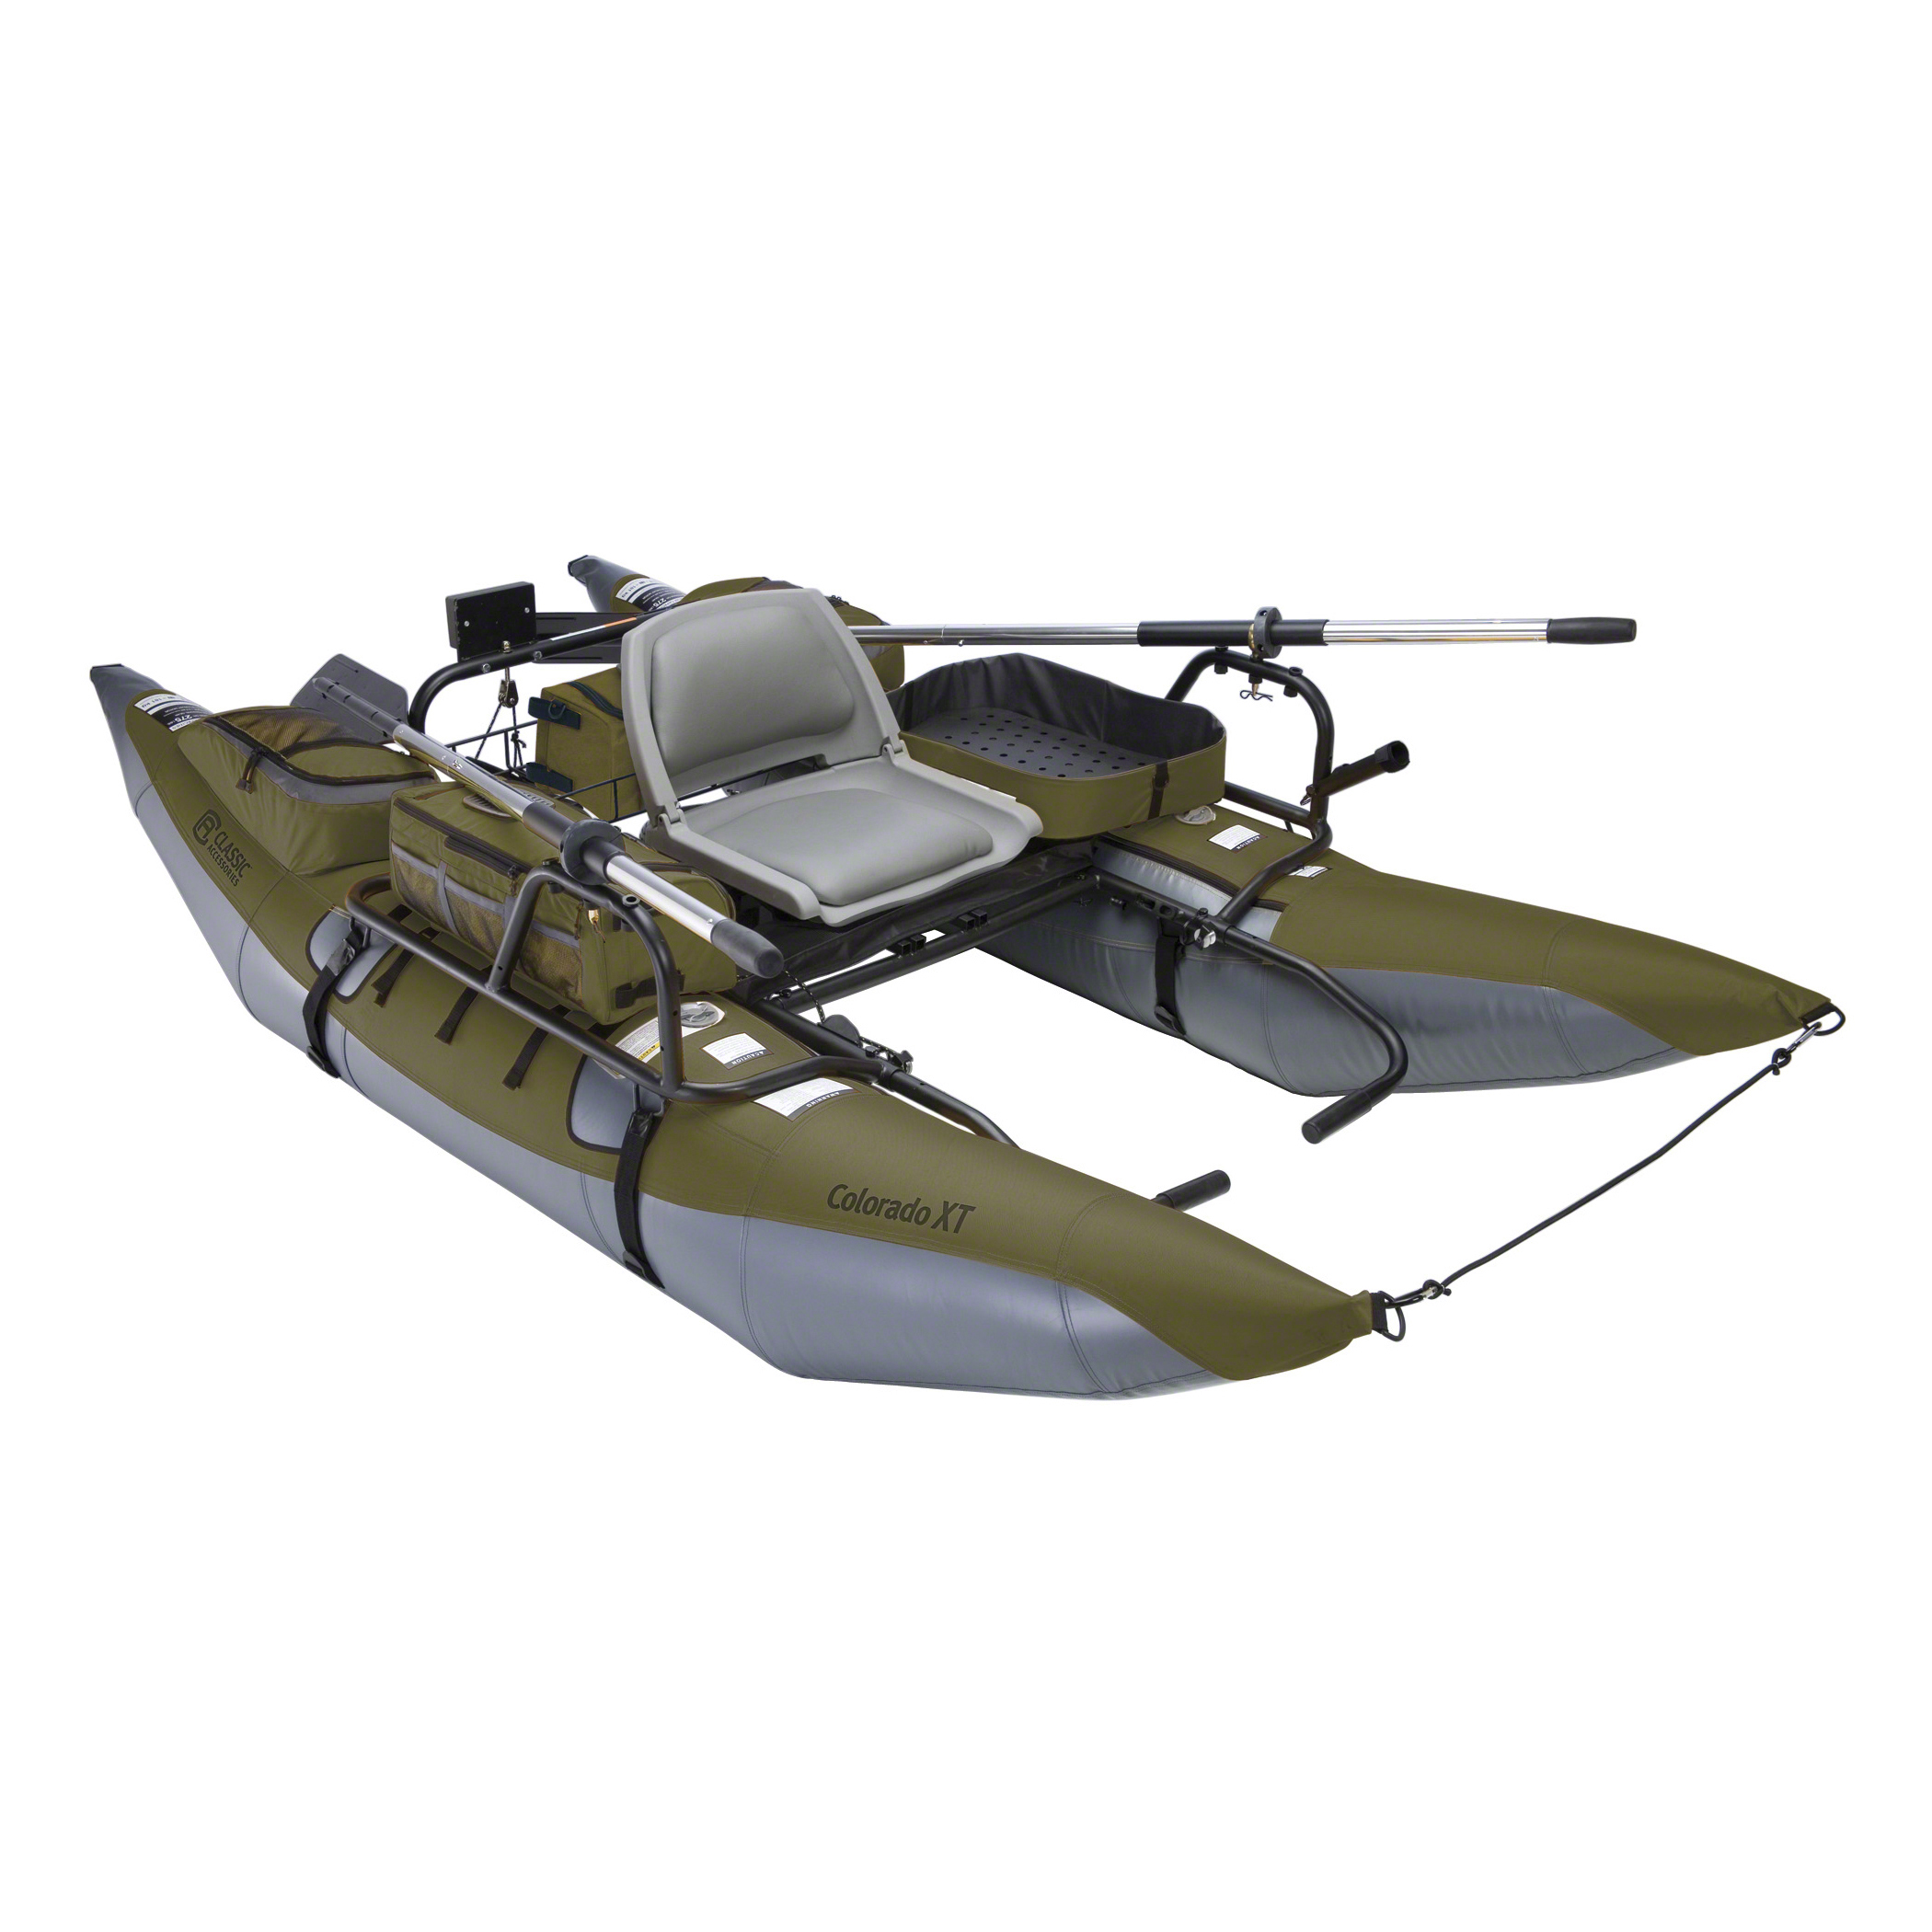 Classic Accessories Colorado XT Pontoon Fishing Boat, Sage